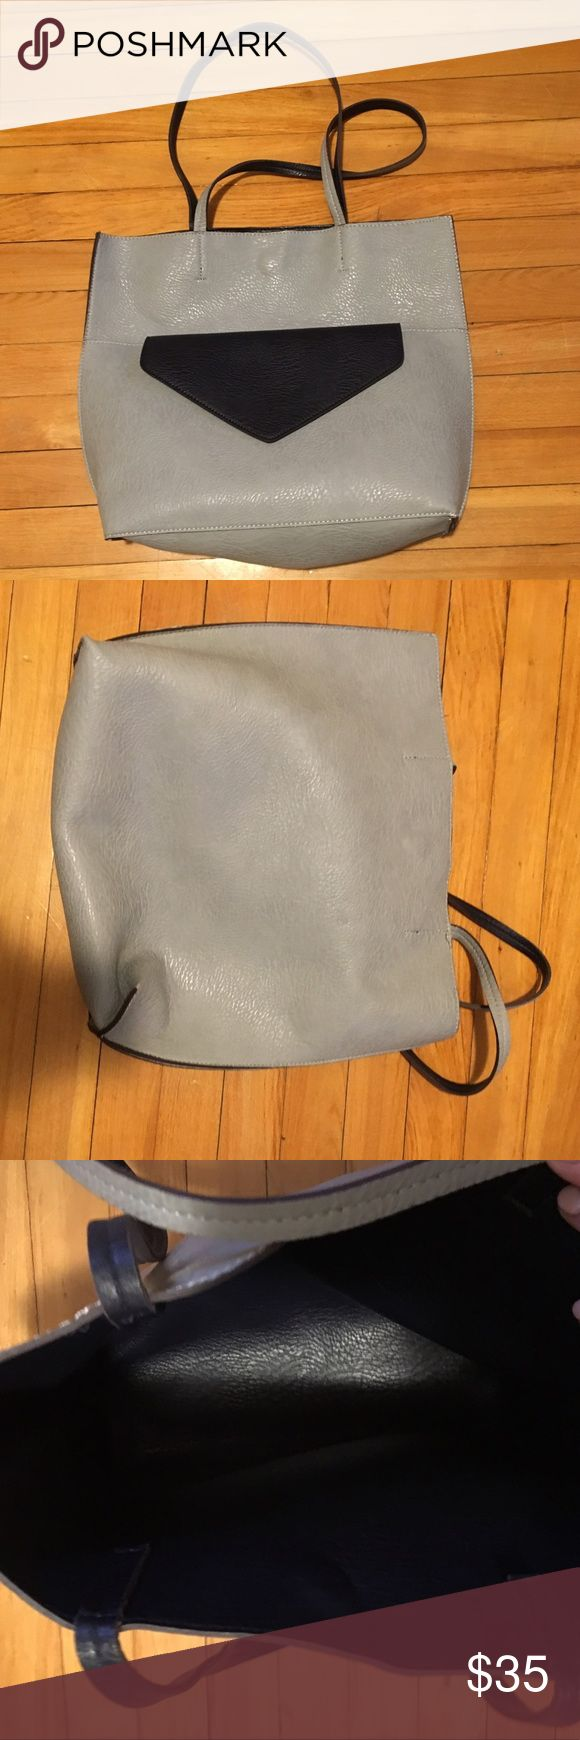 Gray and navy blue bag with detachable clutch Gray bag with navy lining. Gray pocket on outside with detachable navy clutch that fits inside the pocket. Great design and only used once or twice! Bags